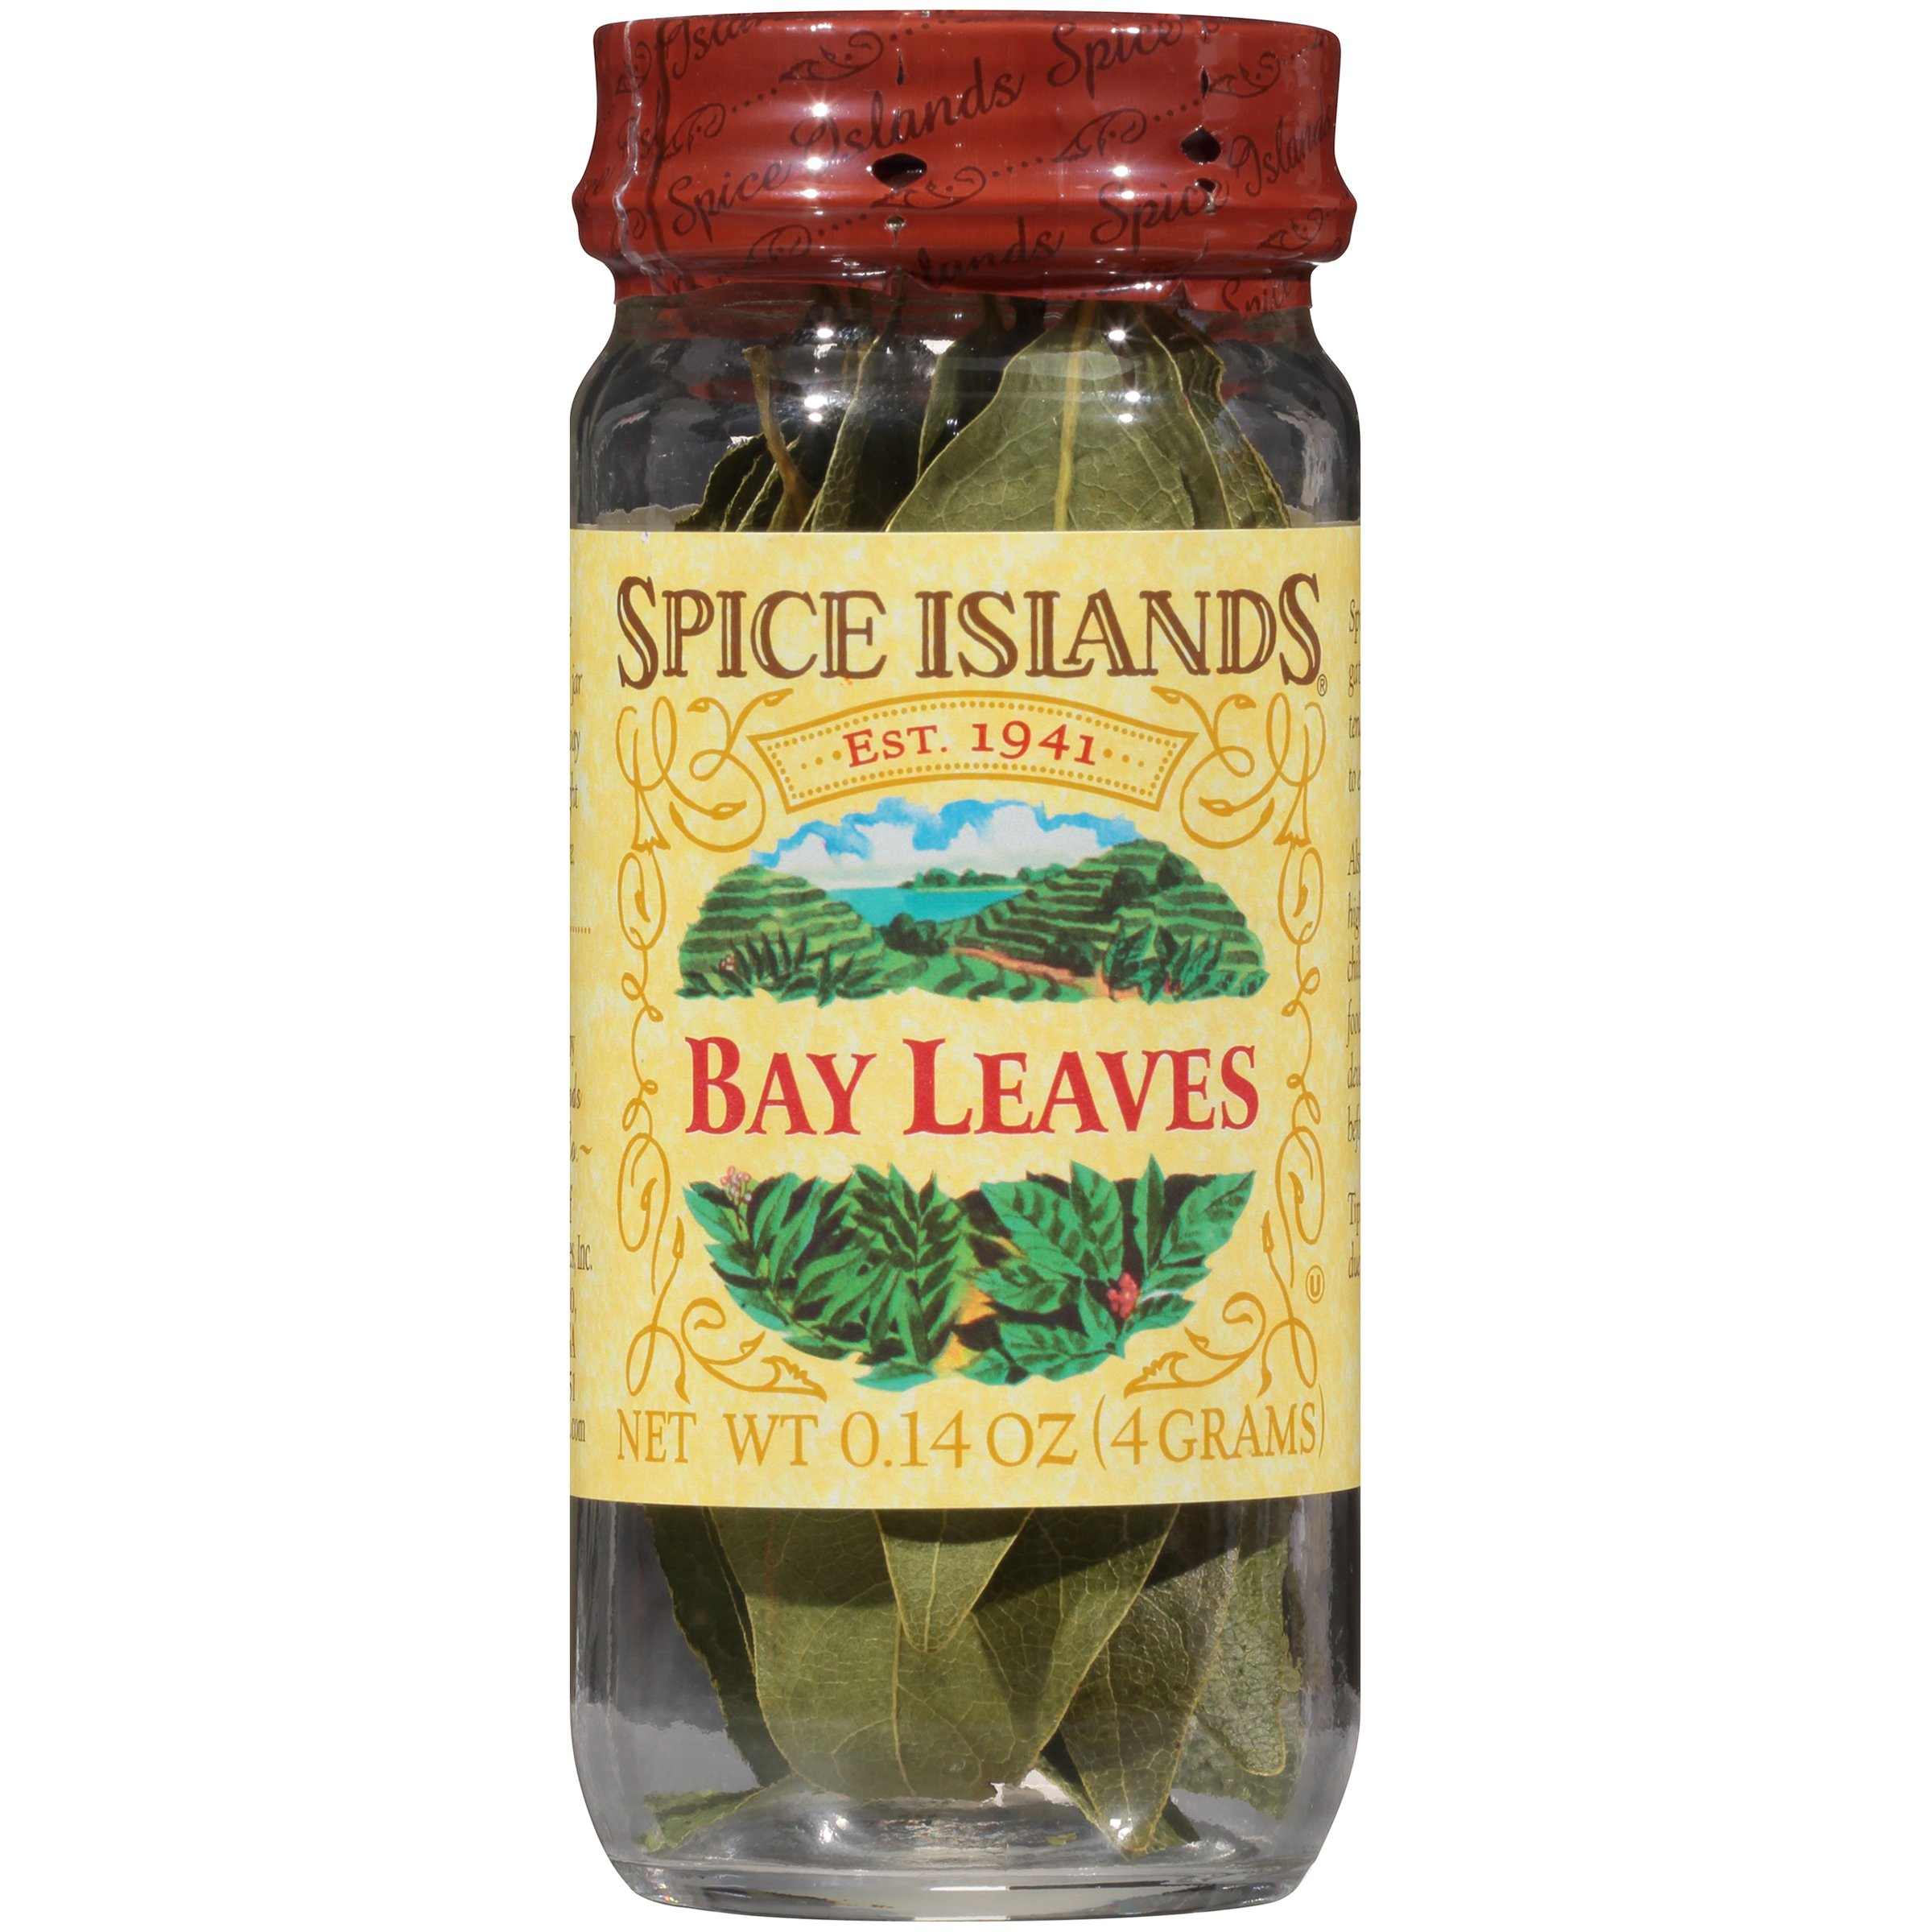 Spice Islands Bay Leaves, Hand Picked, 0.14-Ounce Glass Jars (Pack of 3) by Spice Islands (Image #6)